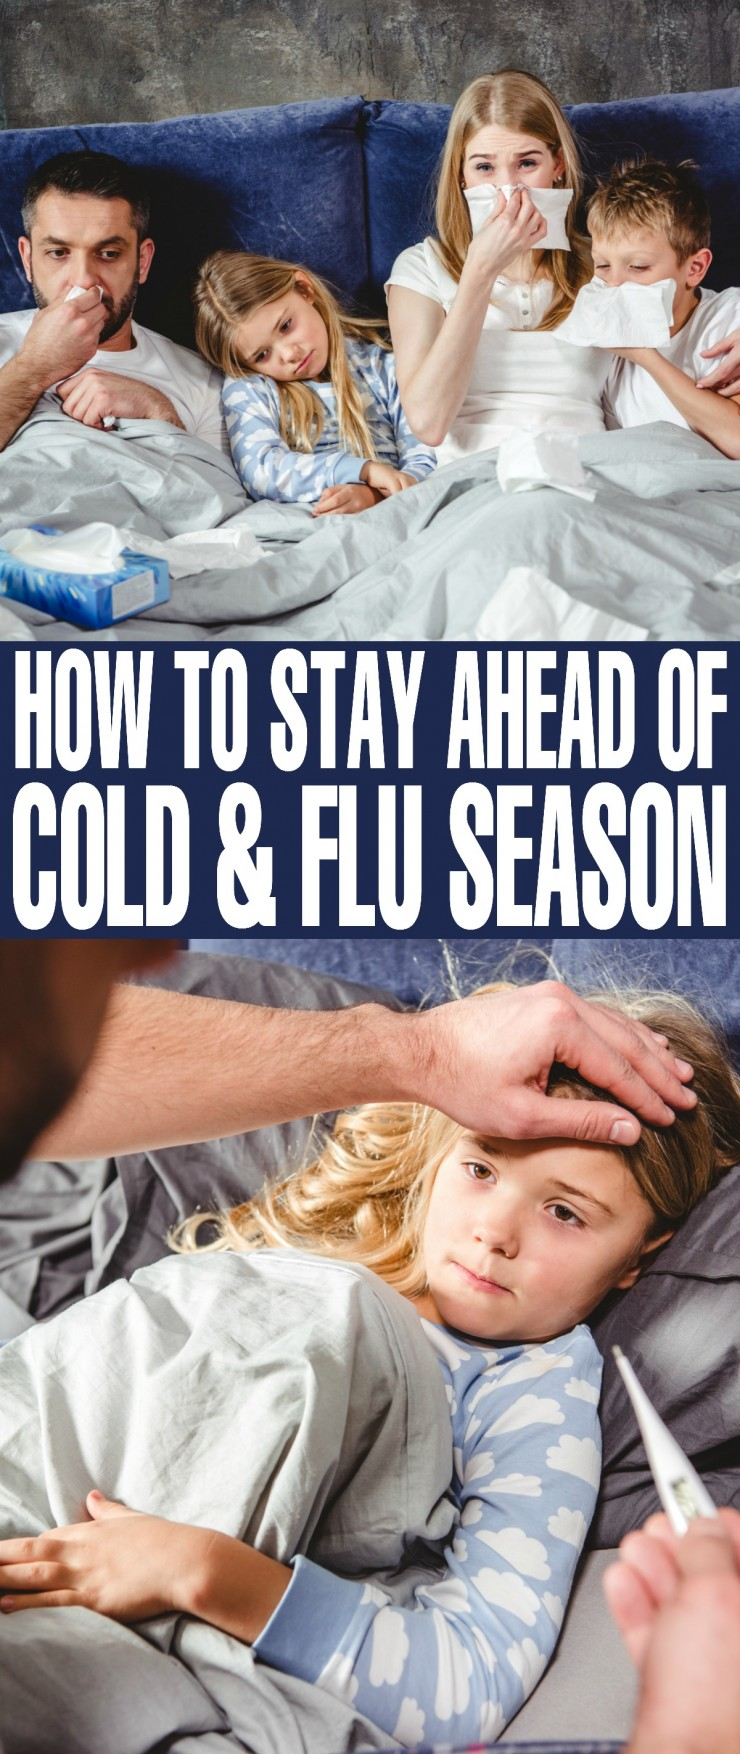 Sweater weather, sore throats and runny noses can only mean one thing – the start of cold and flu season! Luckily, there are easy ways to protect you and your family, and with the proper care and a lot of TLC you can say goodbye to cold and flu symptoms in as little as three days. By taking these preventative steps, you'll fight every flu season with confidence.